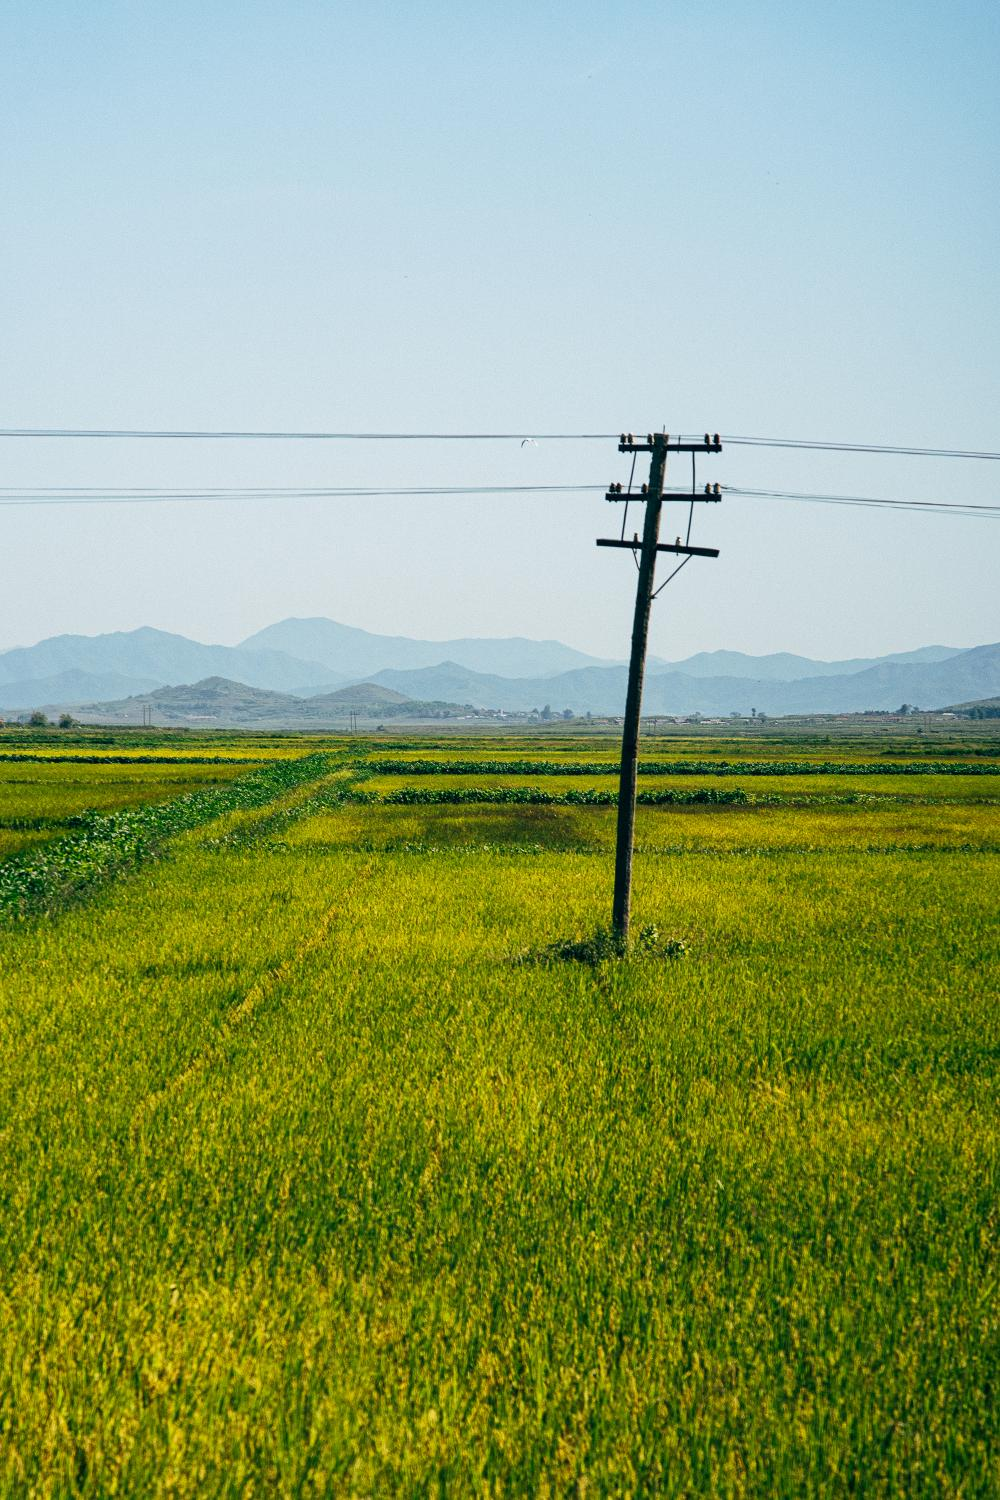 Art and Documentary Photography - Loading Joe_Hockley_Countryside_near_Kaesong_North_Korea.jpg